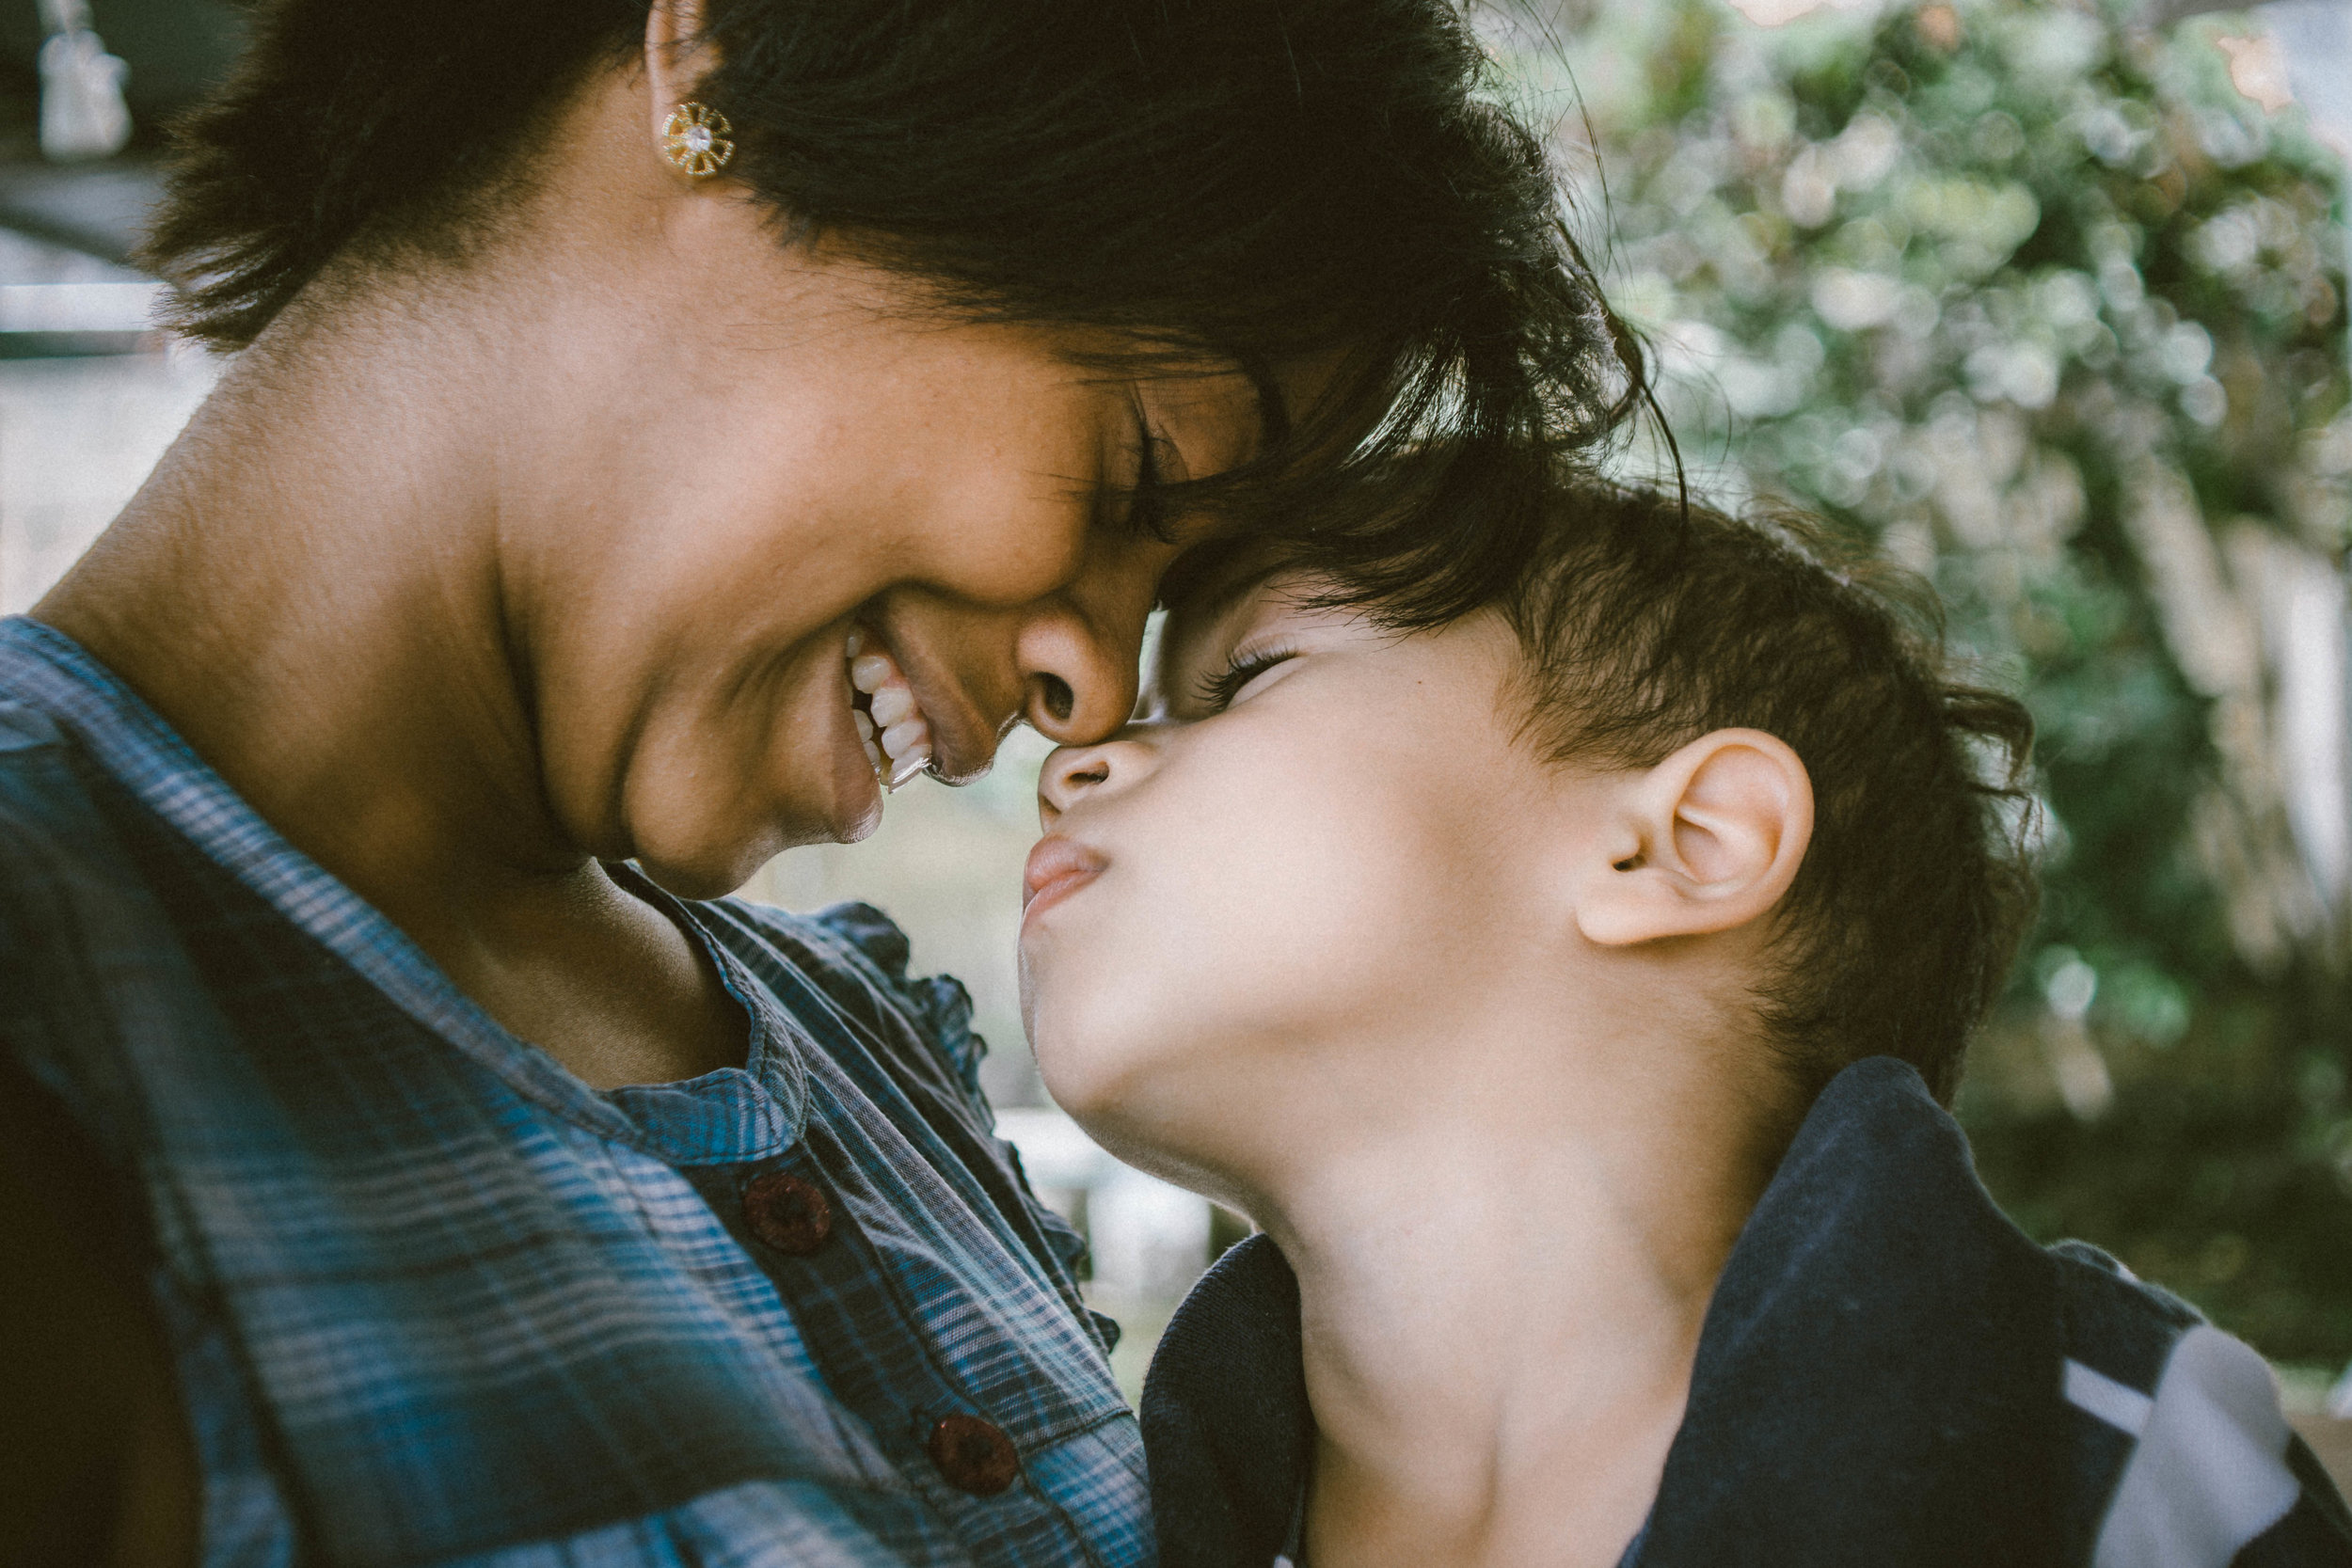 BECOME A FOSTER PARENT - Click on this link to learn how to become a foster parent in Butler County. There are waiting kids right now that need you!